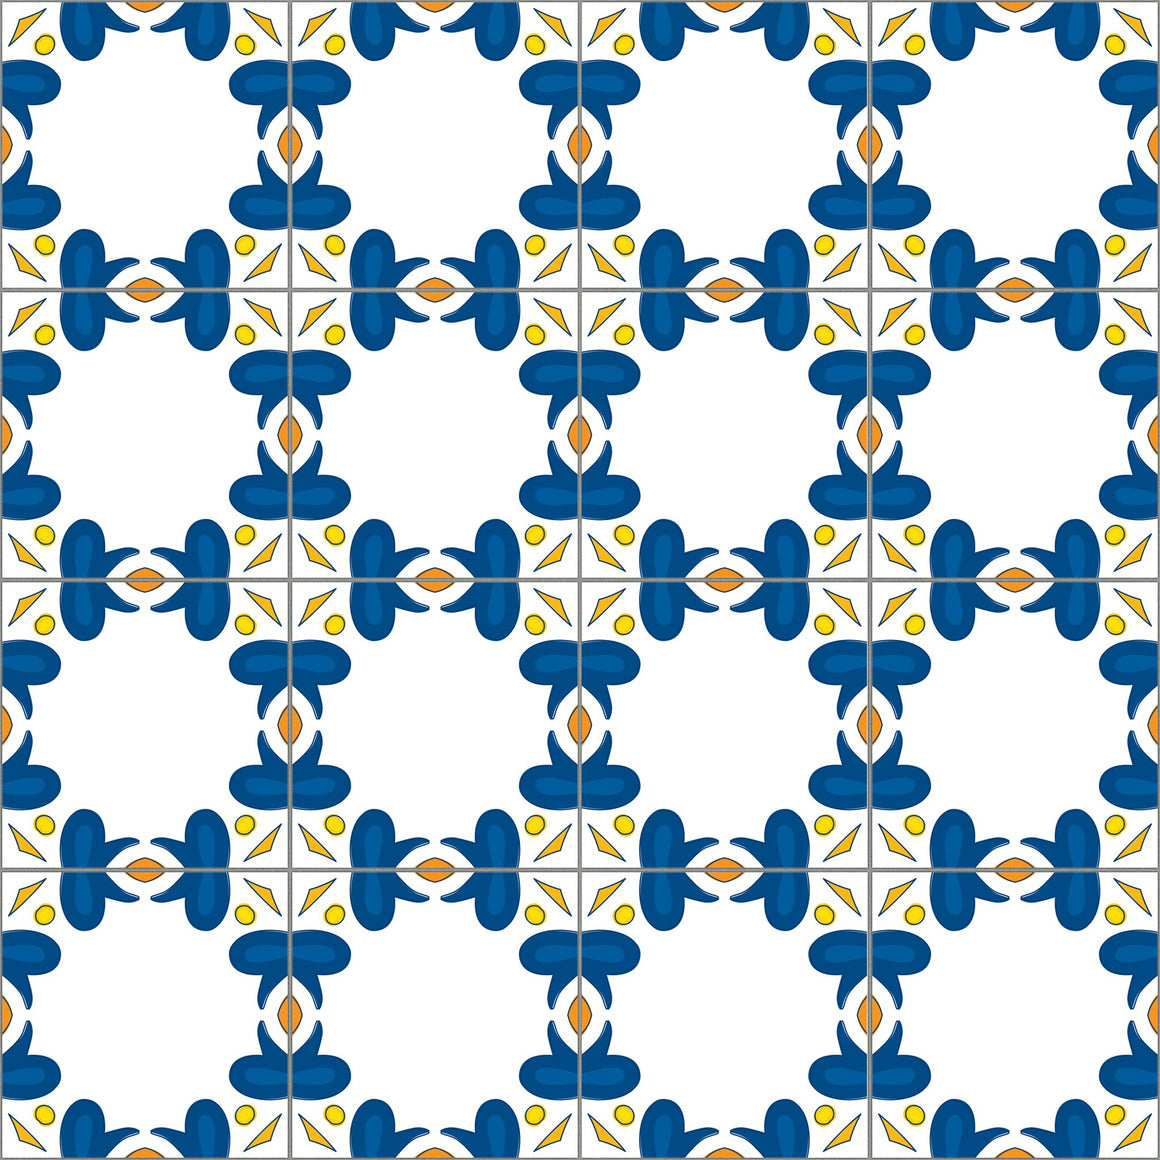 Tile stickers - KP077